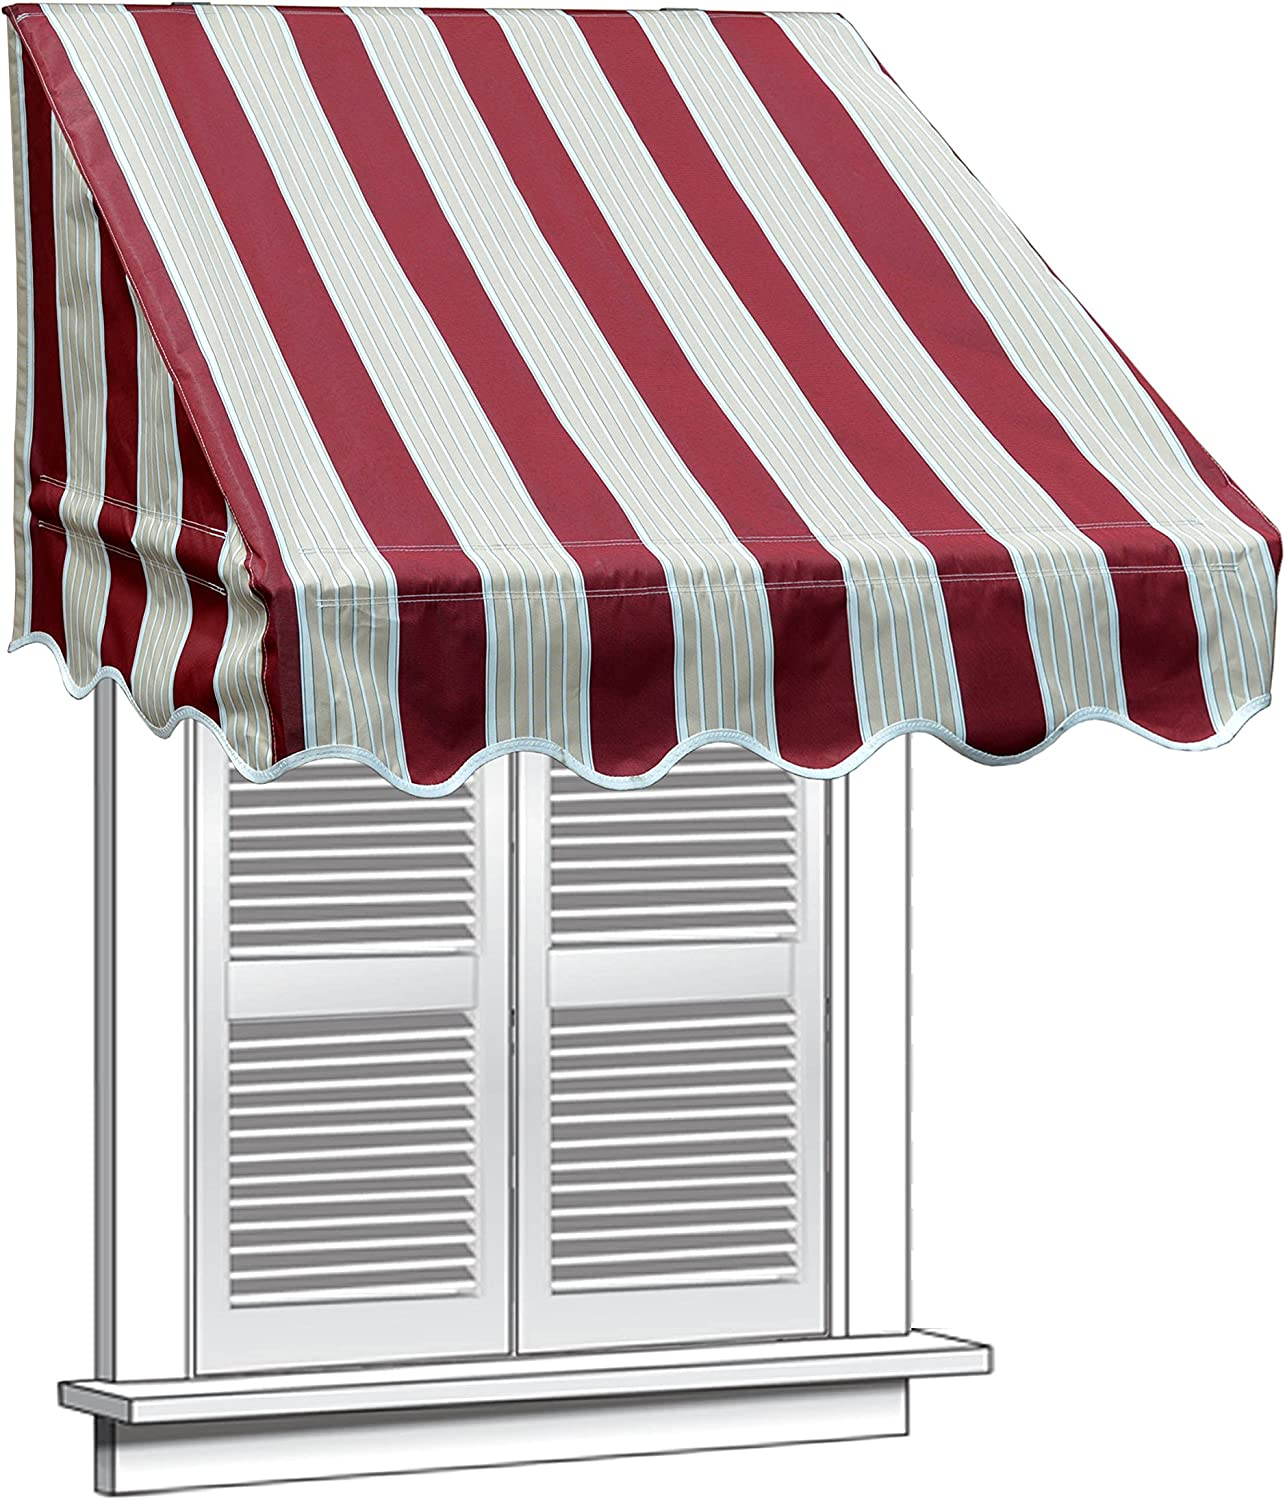 ALEKO WAW4X2MSTRRE19 Window Canopy Awning - 4 x 2 Feet - Multi-Striped Red